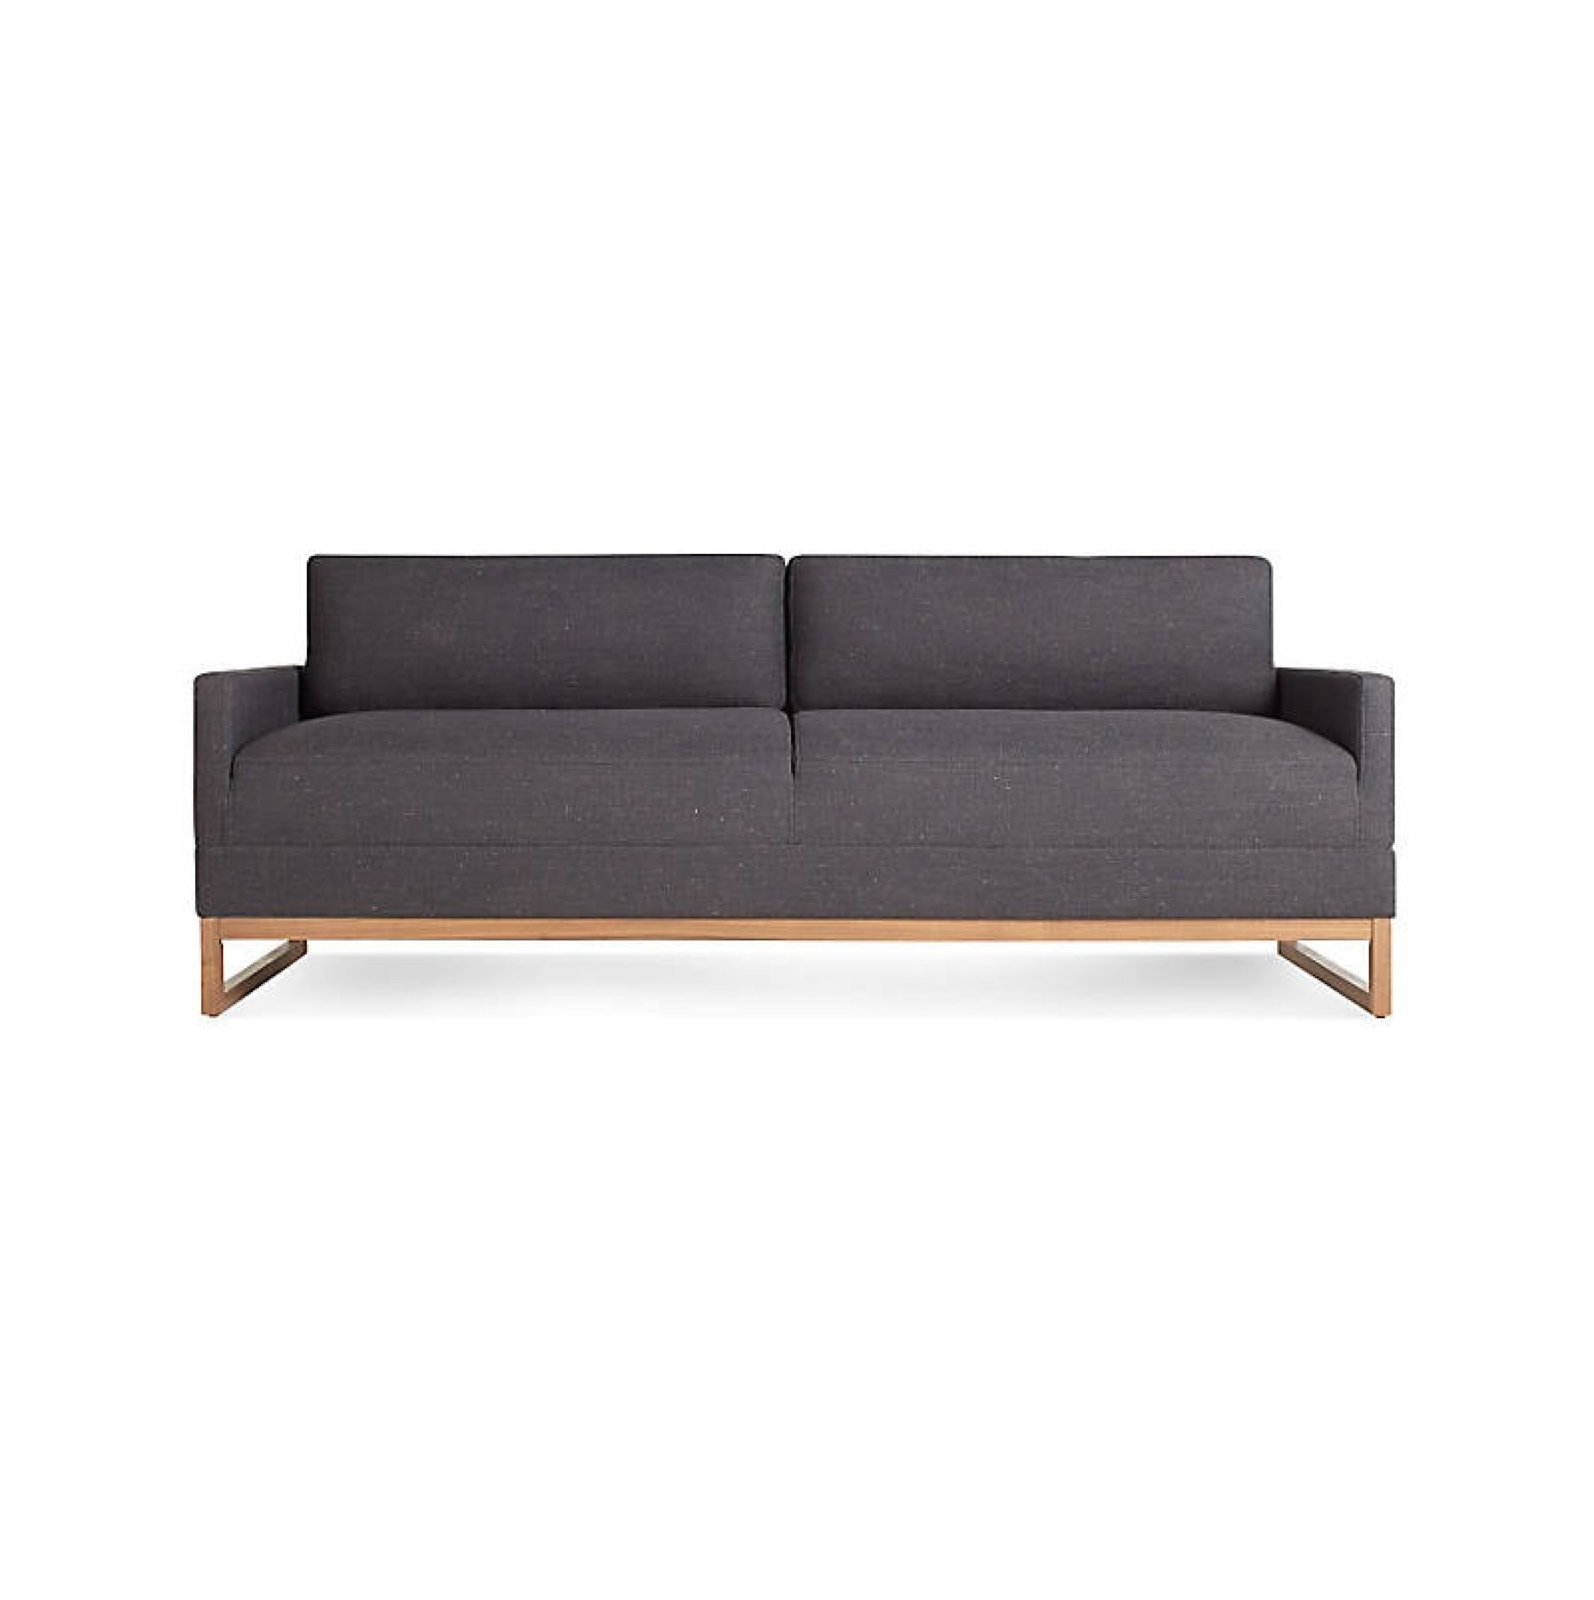 Blu Dot The Diplomat Sleeper Sofa